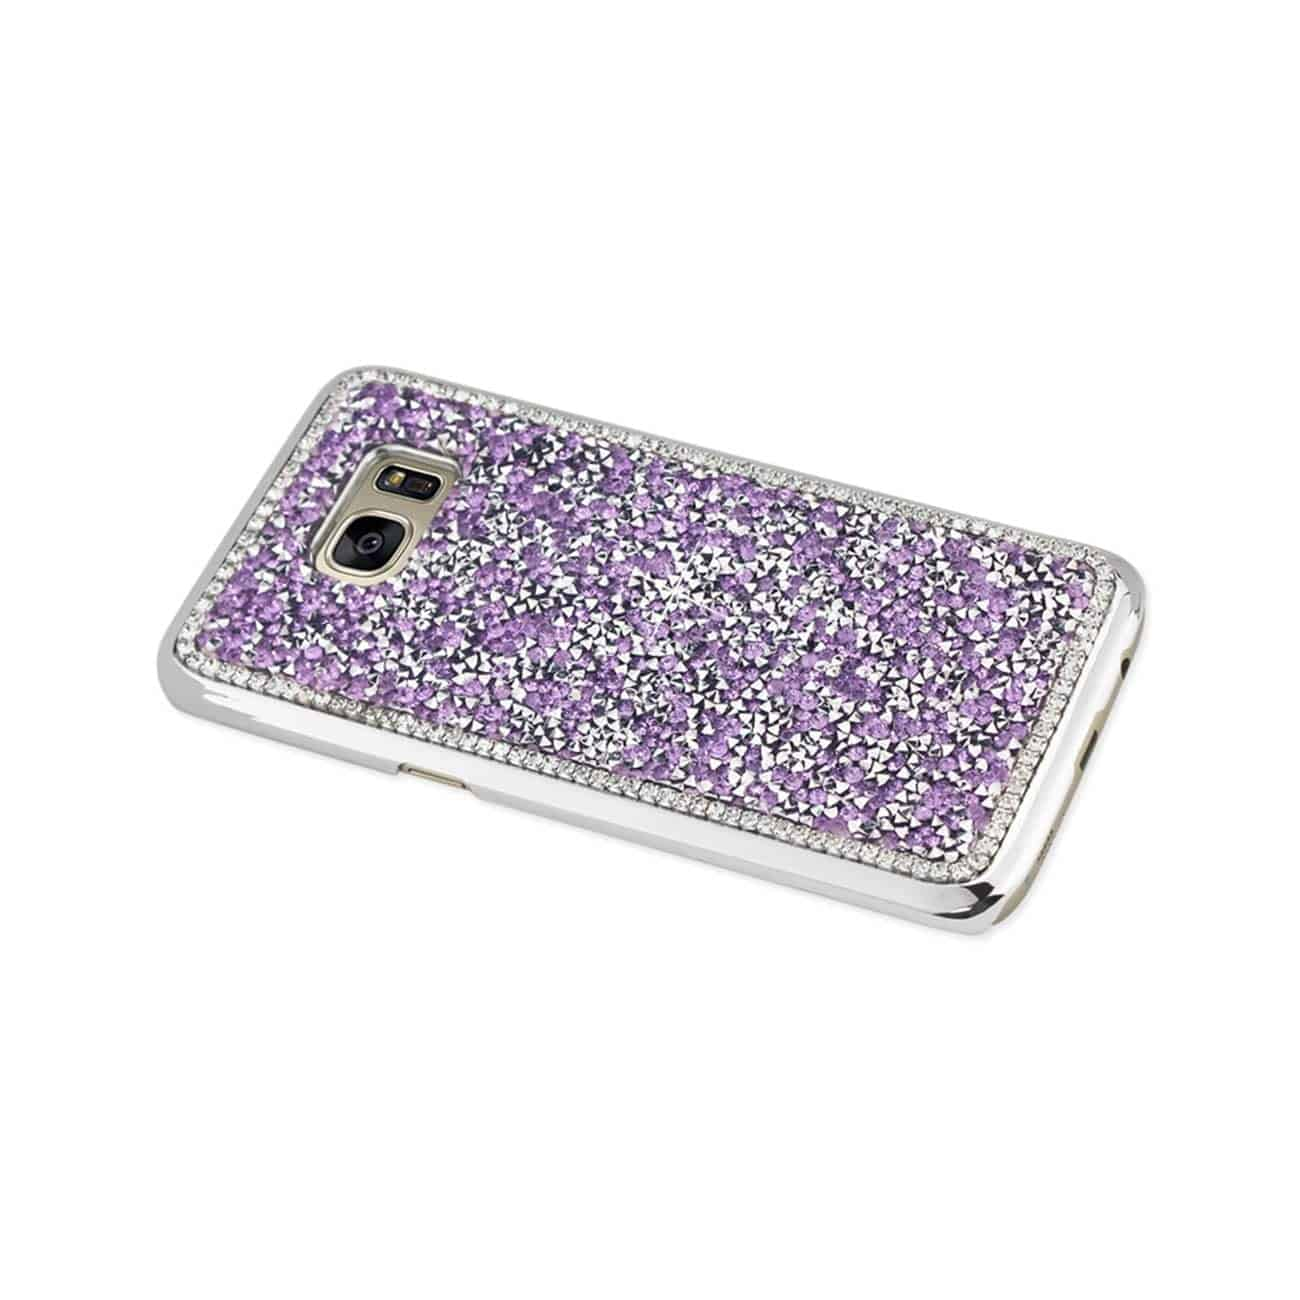 SAMSUNG GALAXY S7 EDGE JEWELRY BLING RHINESTONE CASE IN PURPLE